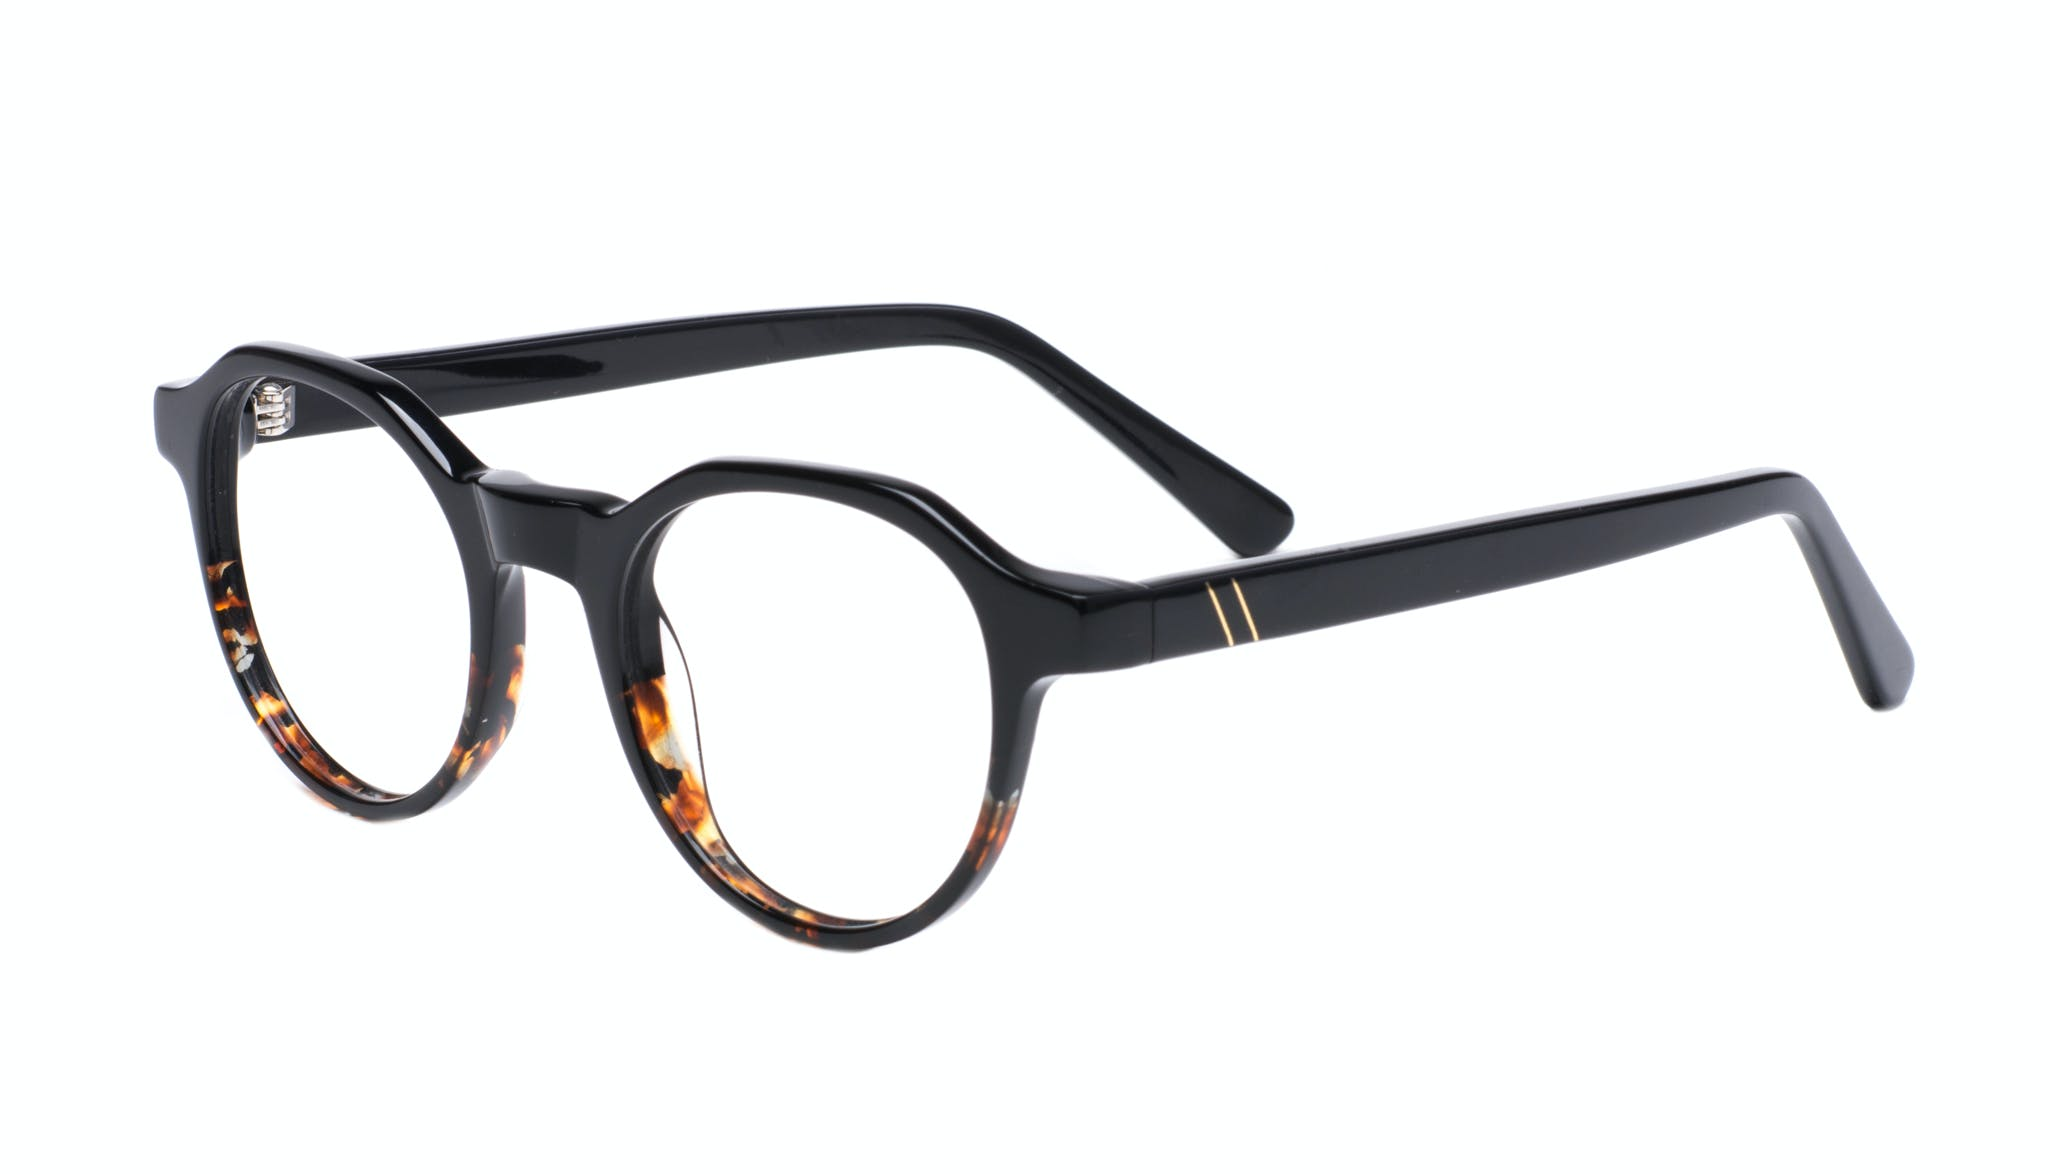 Affordable Fashion Glasses Round Eyeglasses Men Form Black Mahogany Tilt